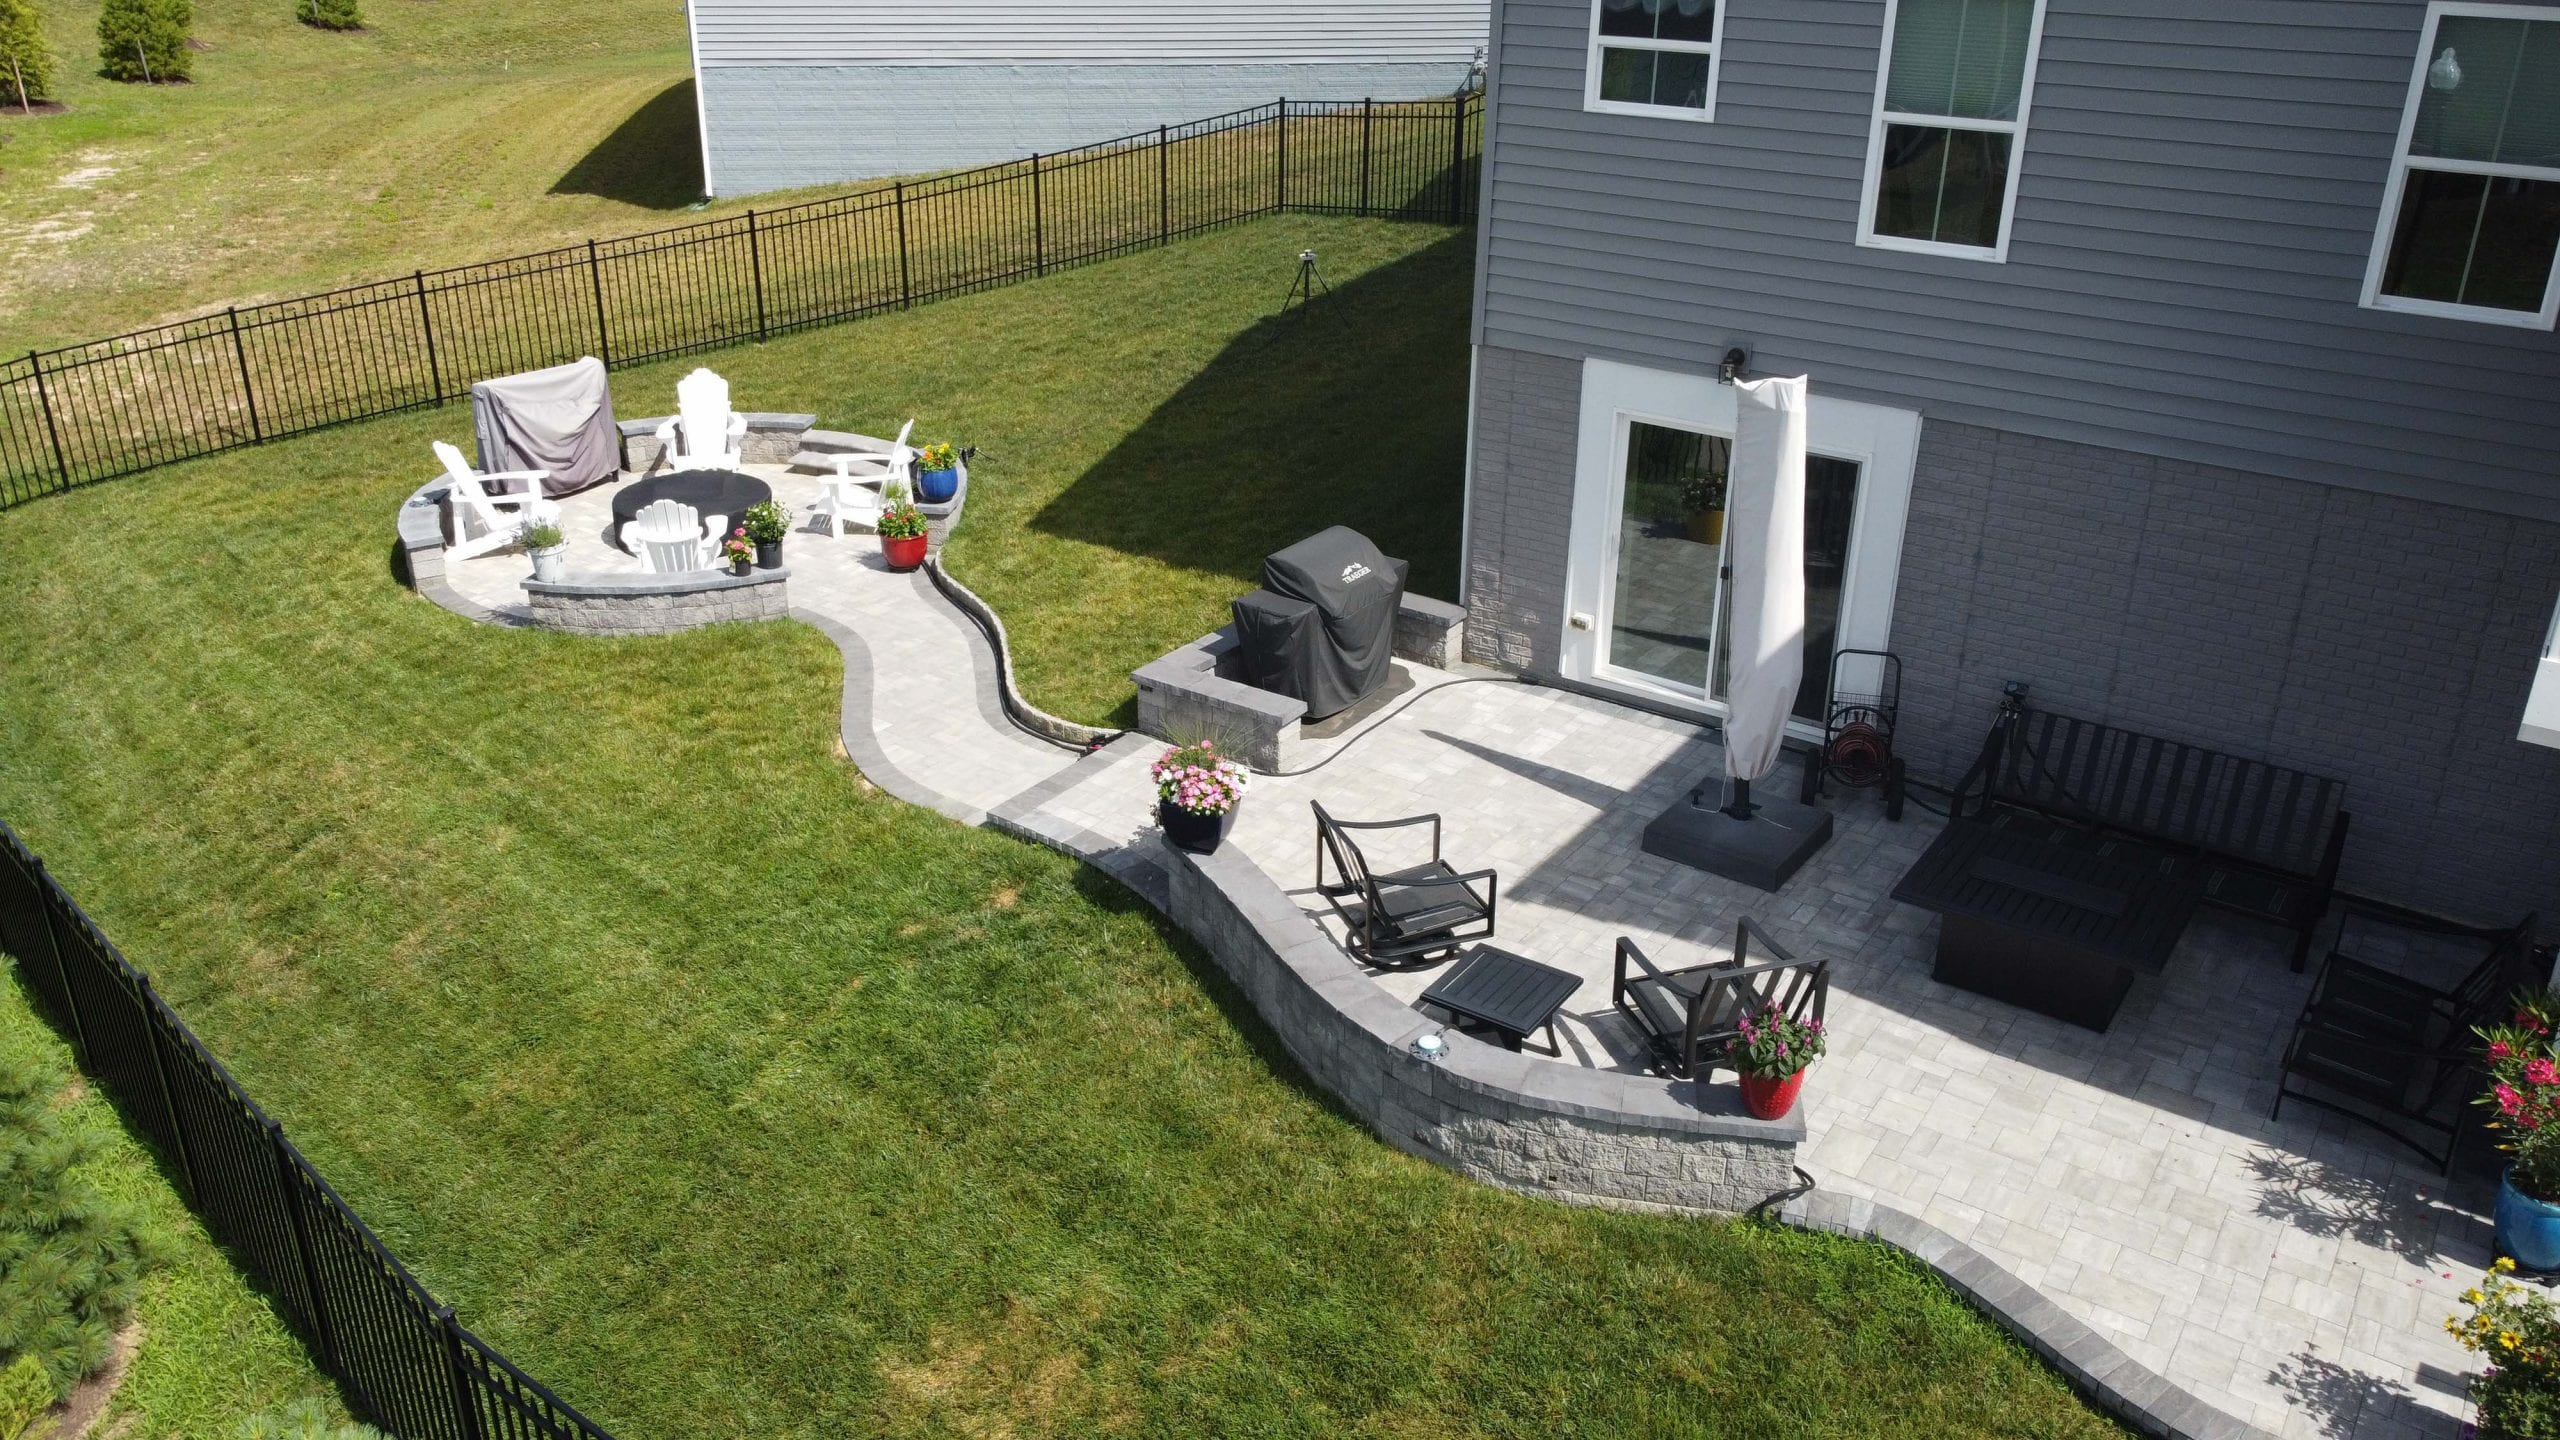 New construction - expansive patios, walkways and fire pits constructed in back yard